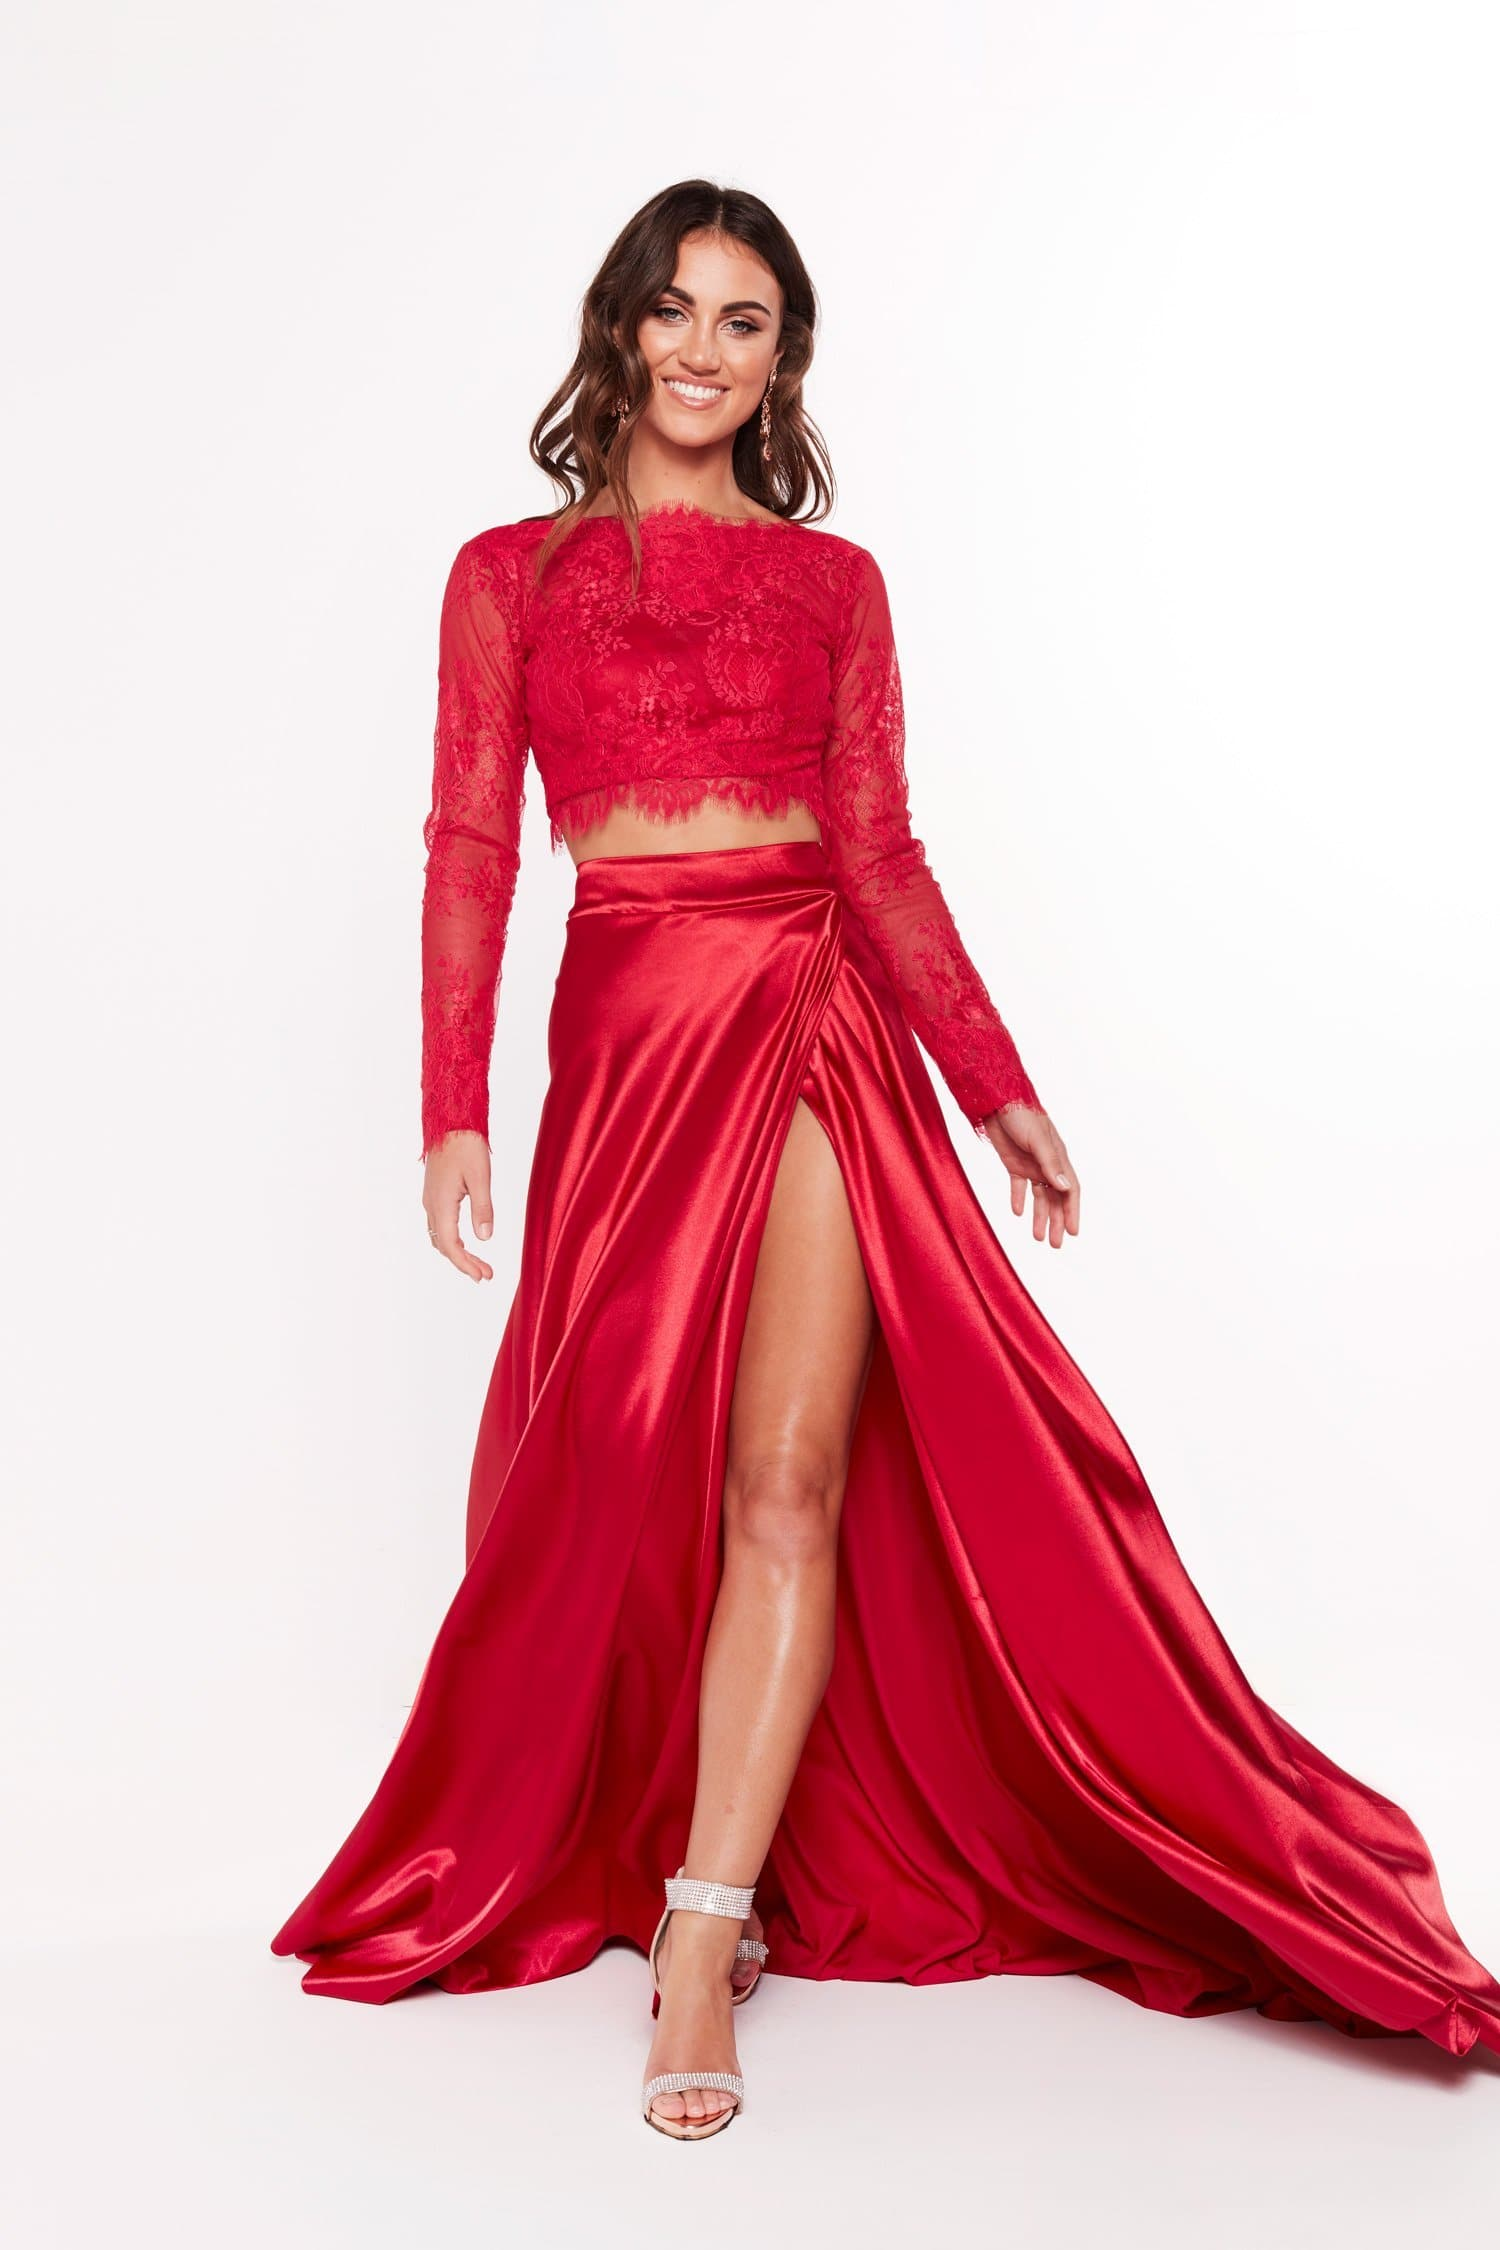 043b433ca247 A&N Katerina - Red Lace Satin Two Piece Formal Gown with Side Slit ...